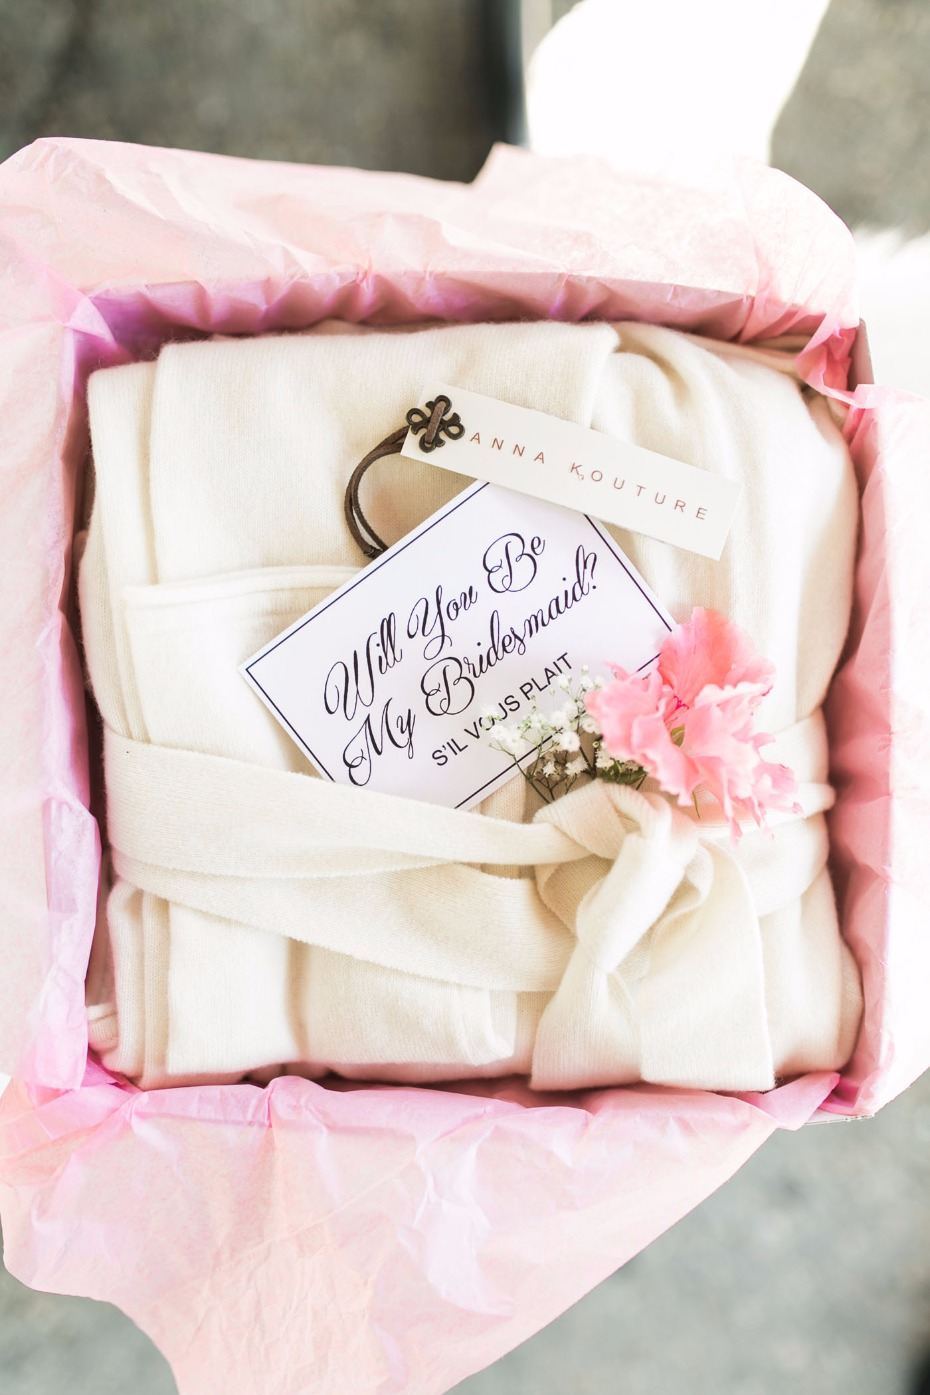 Will you be my bridesmaid gift- robe from Anna K.outure